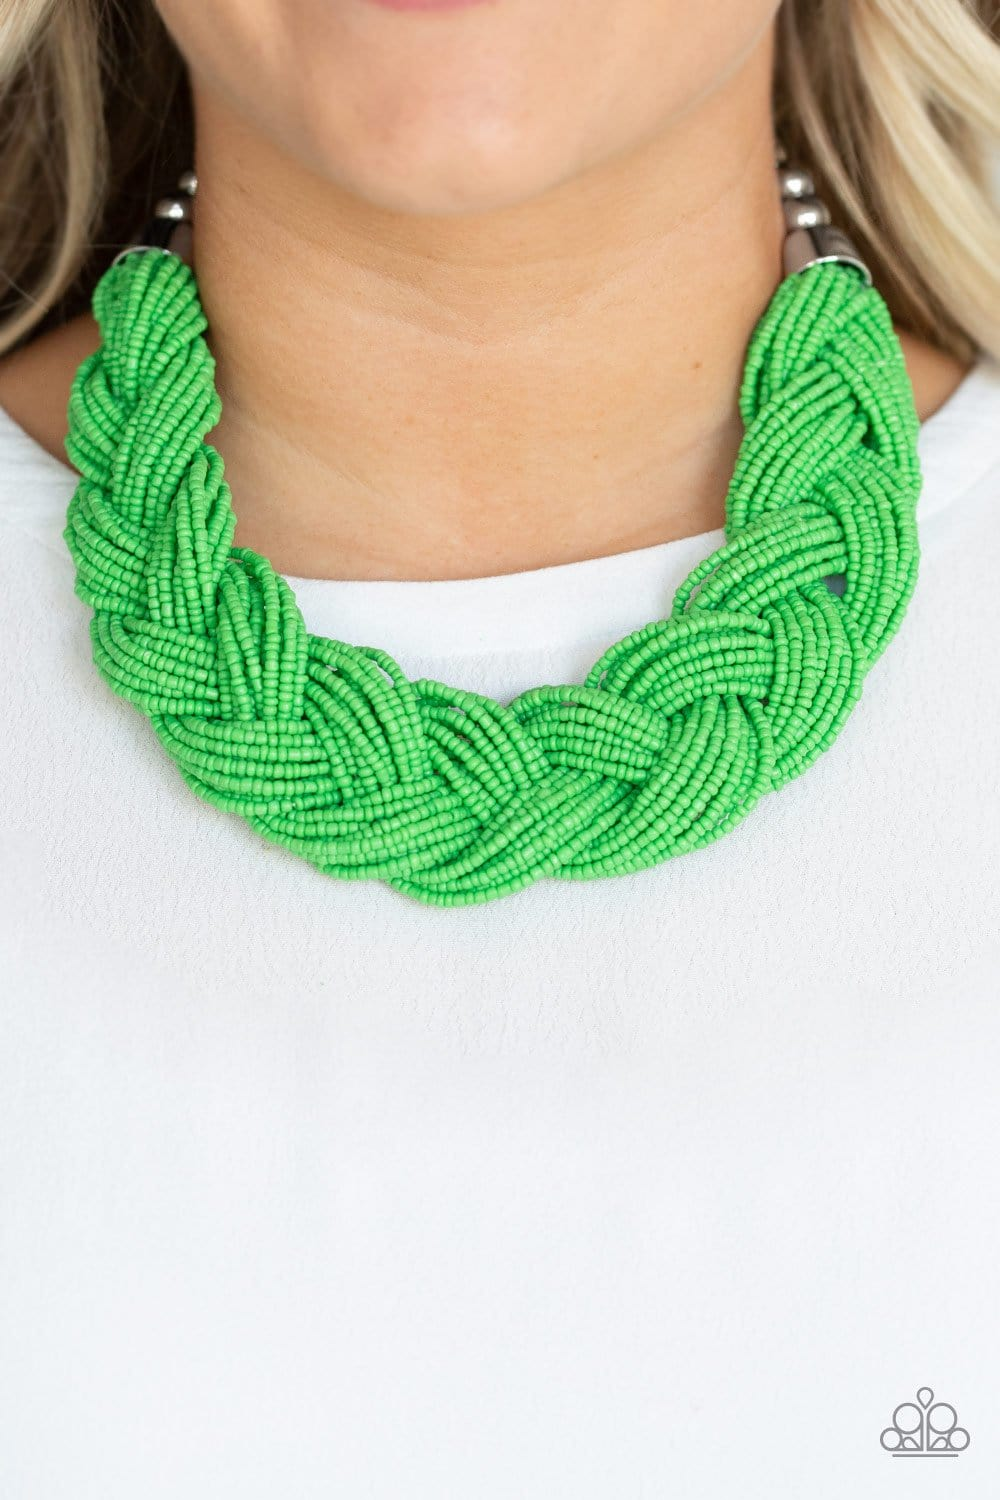 Paparazzi: The Great Outback - Green Bead Necklace - Jewels N' Thingz Boutique